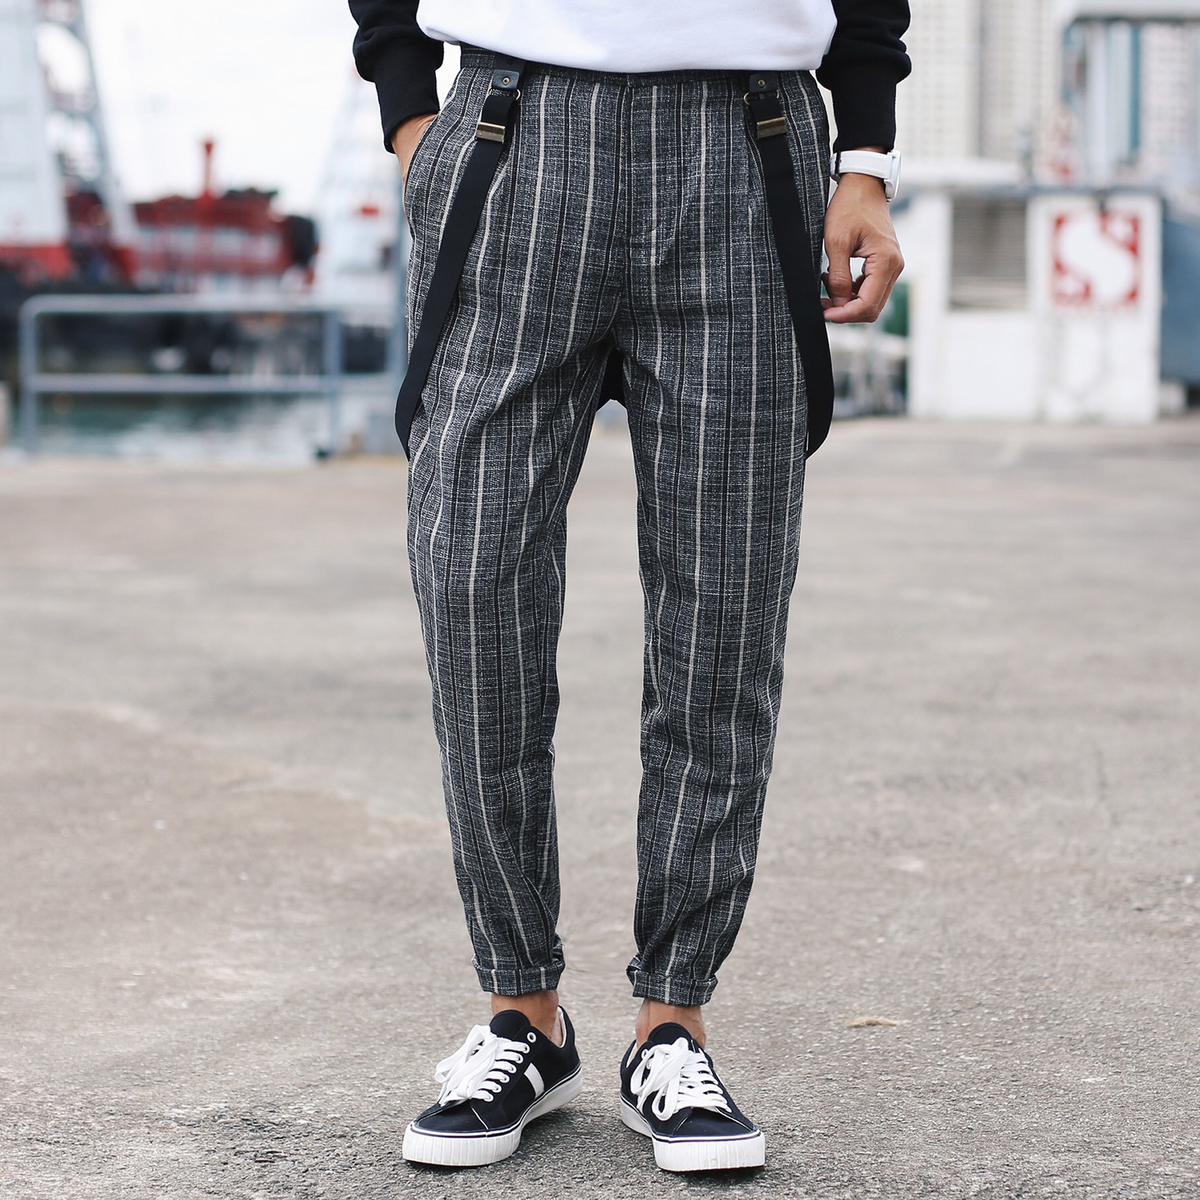 2017 Autumn Japanese New Style Mens Casual Cotton Skinny Grid Pants Rompers Thick Linen Slim Fashion Trousers Nice Overalls